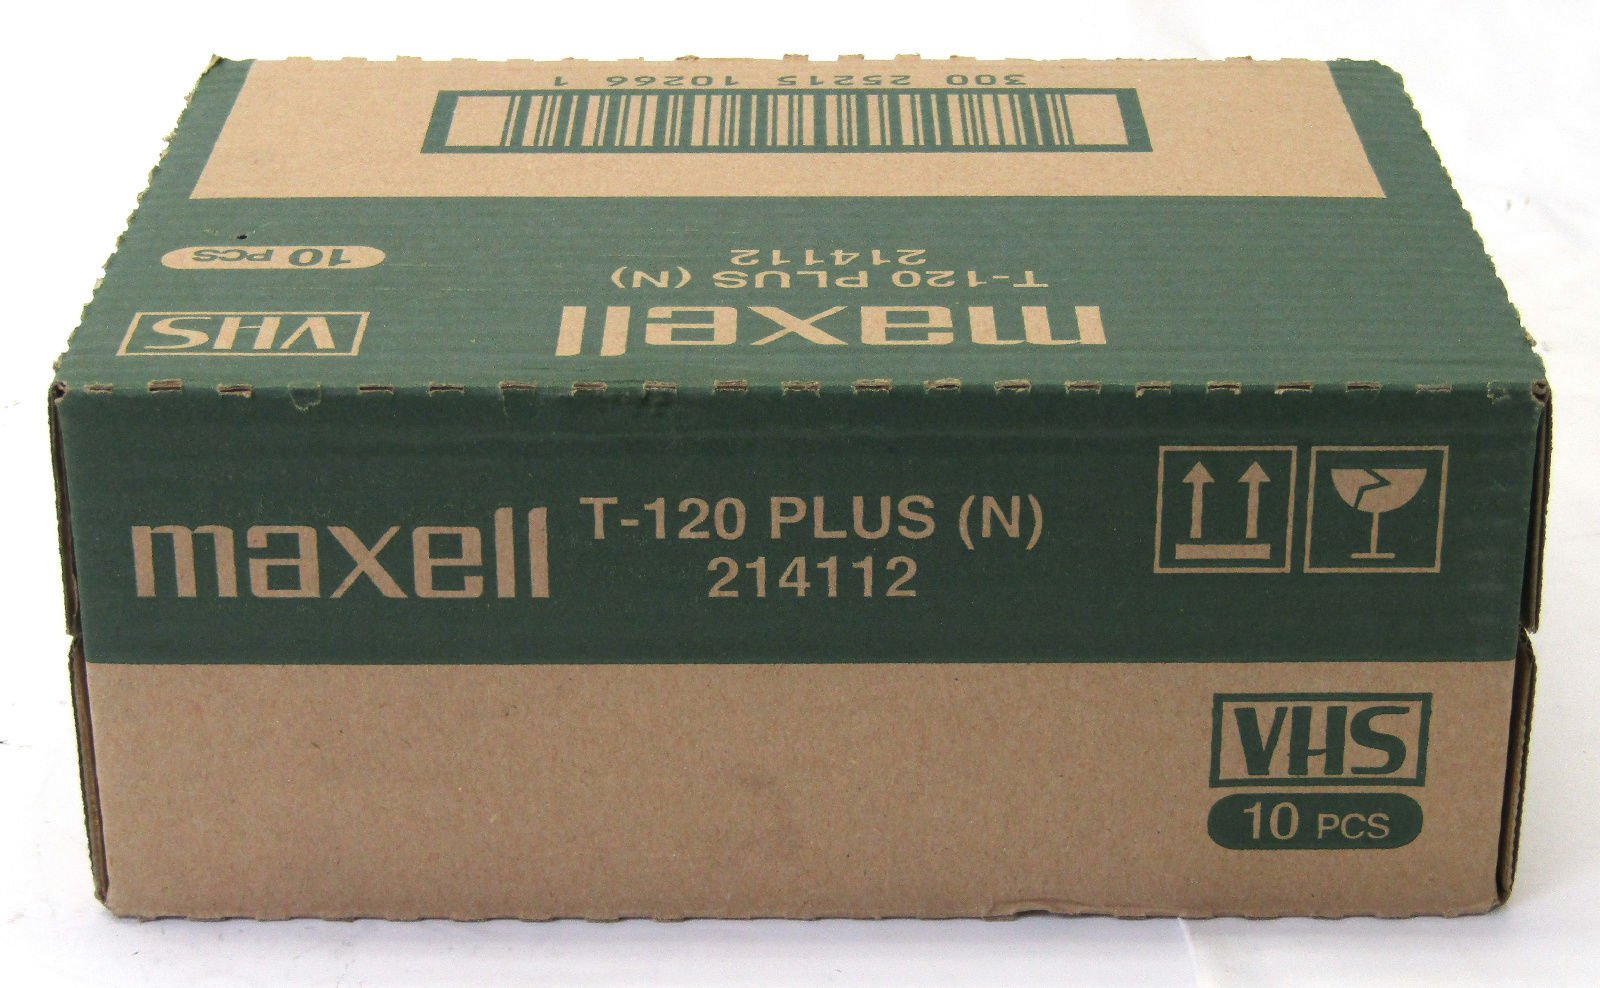 Maxell P/I Plus T-120 VHS, Pack of 10 by Maxell